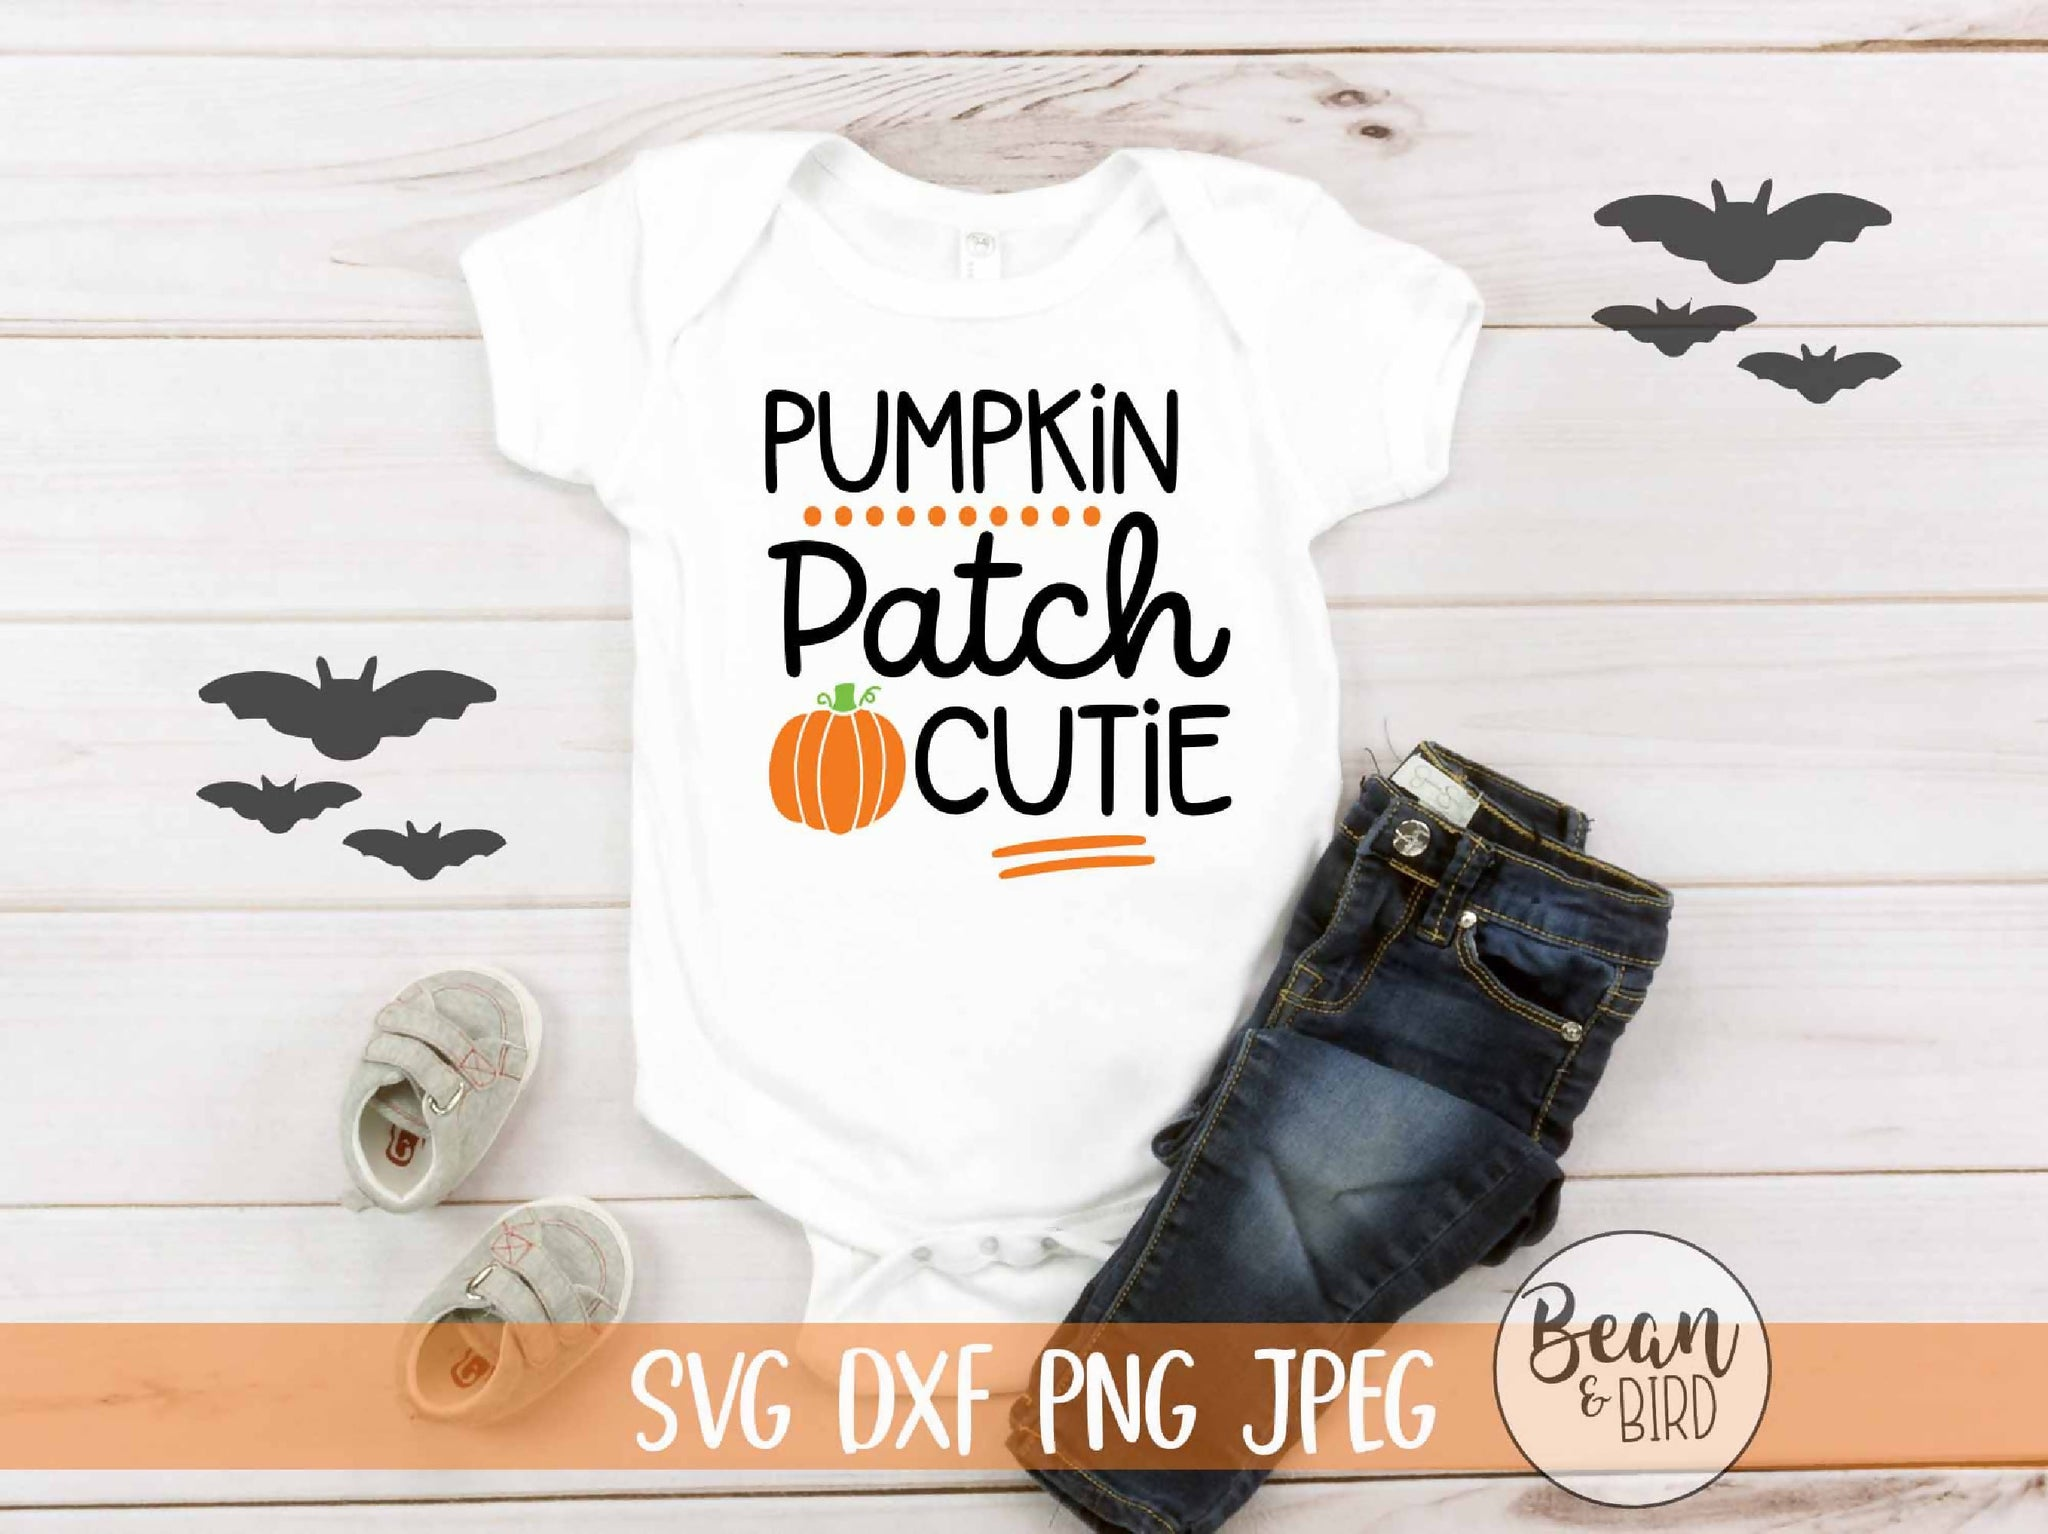 34+ Pumpkin Patch Cutie / Svg Png Jpeg Dxf DXF